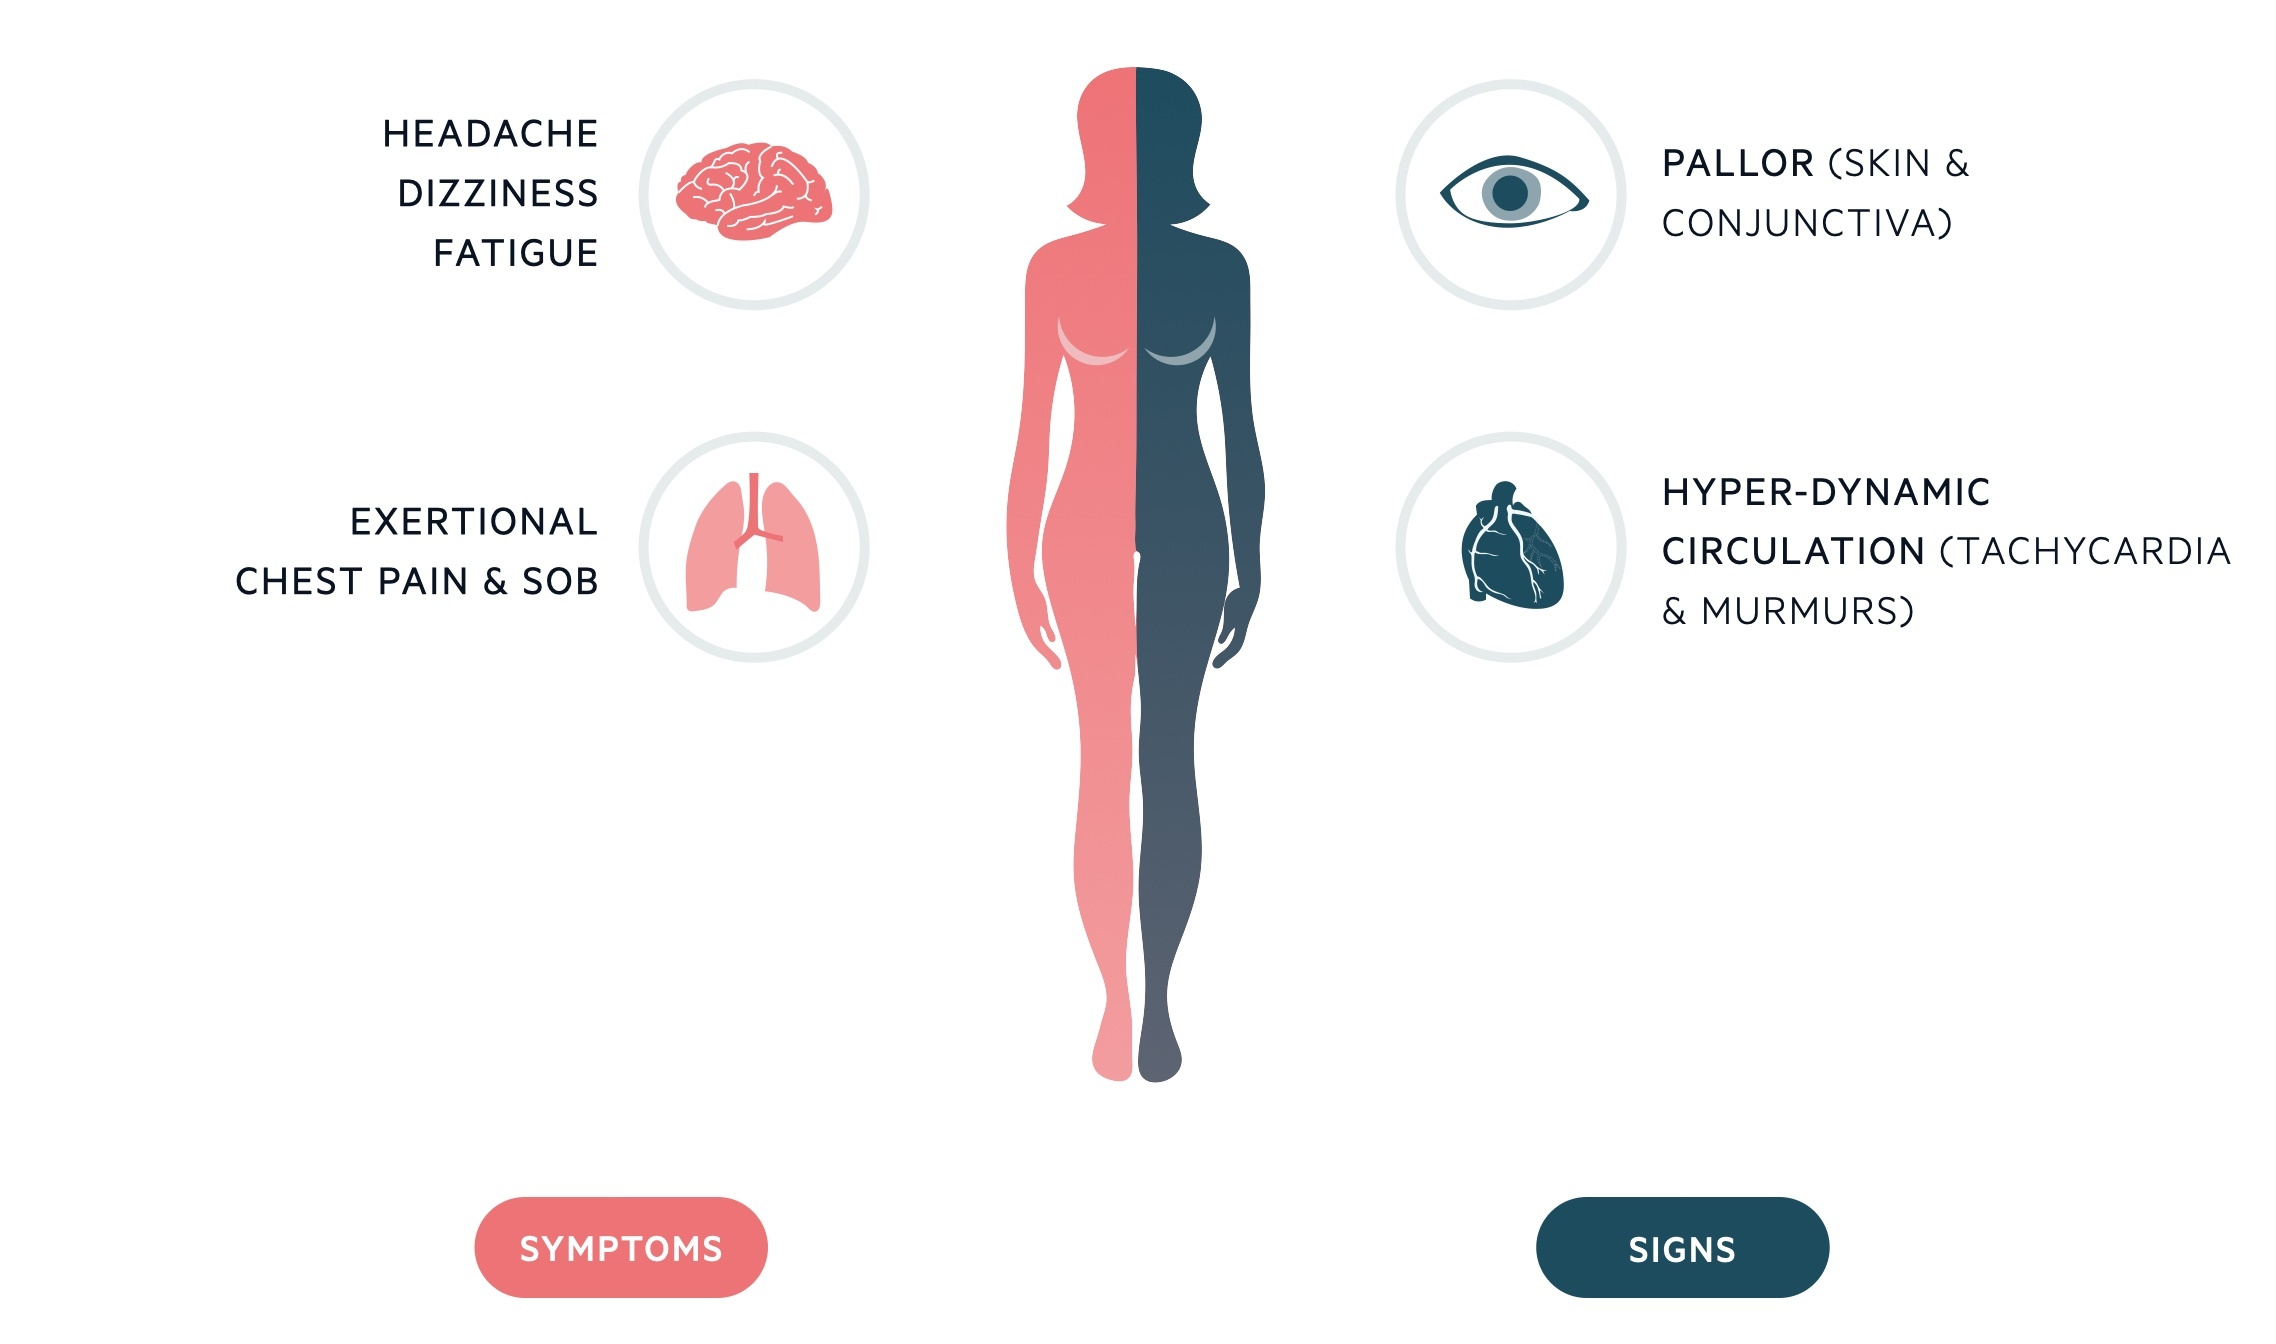 Clinical features of IDA